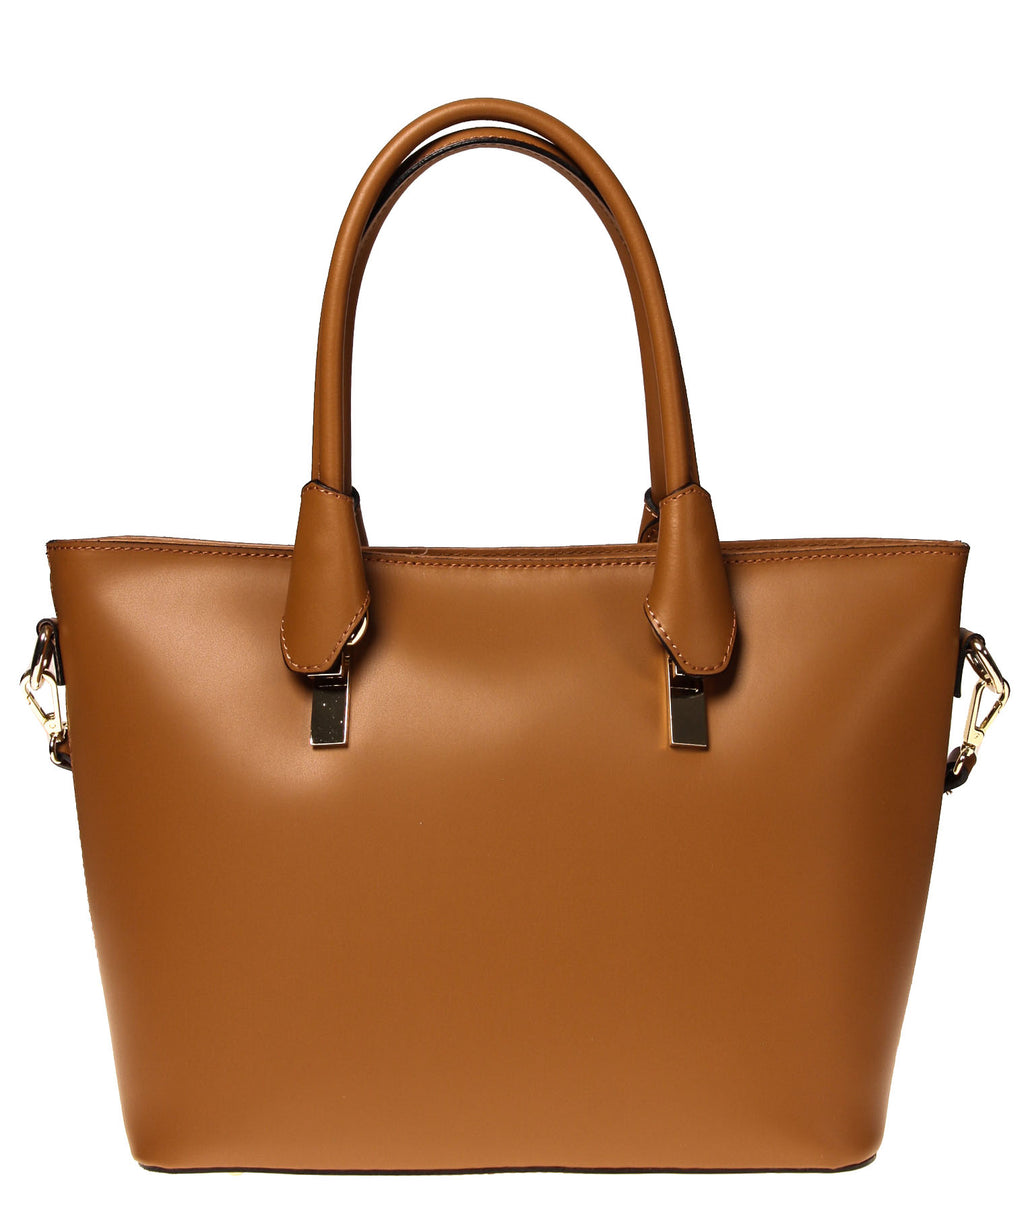 Tano Italian Simple Tote (4397157351508)